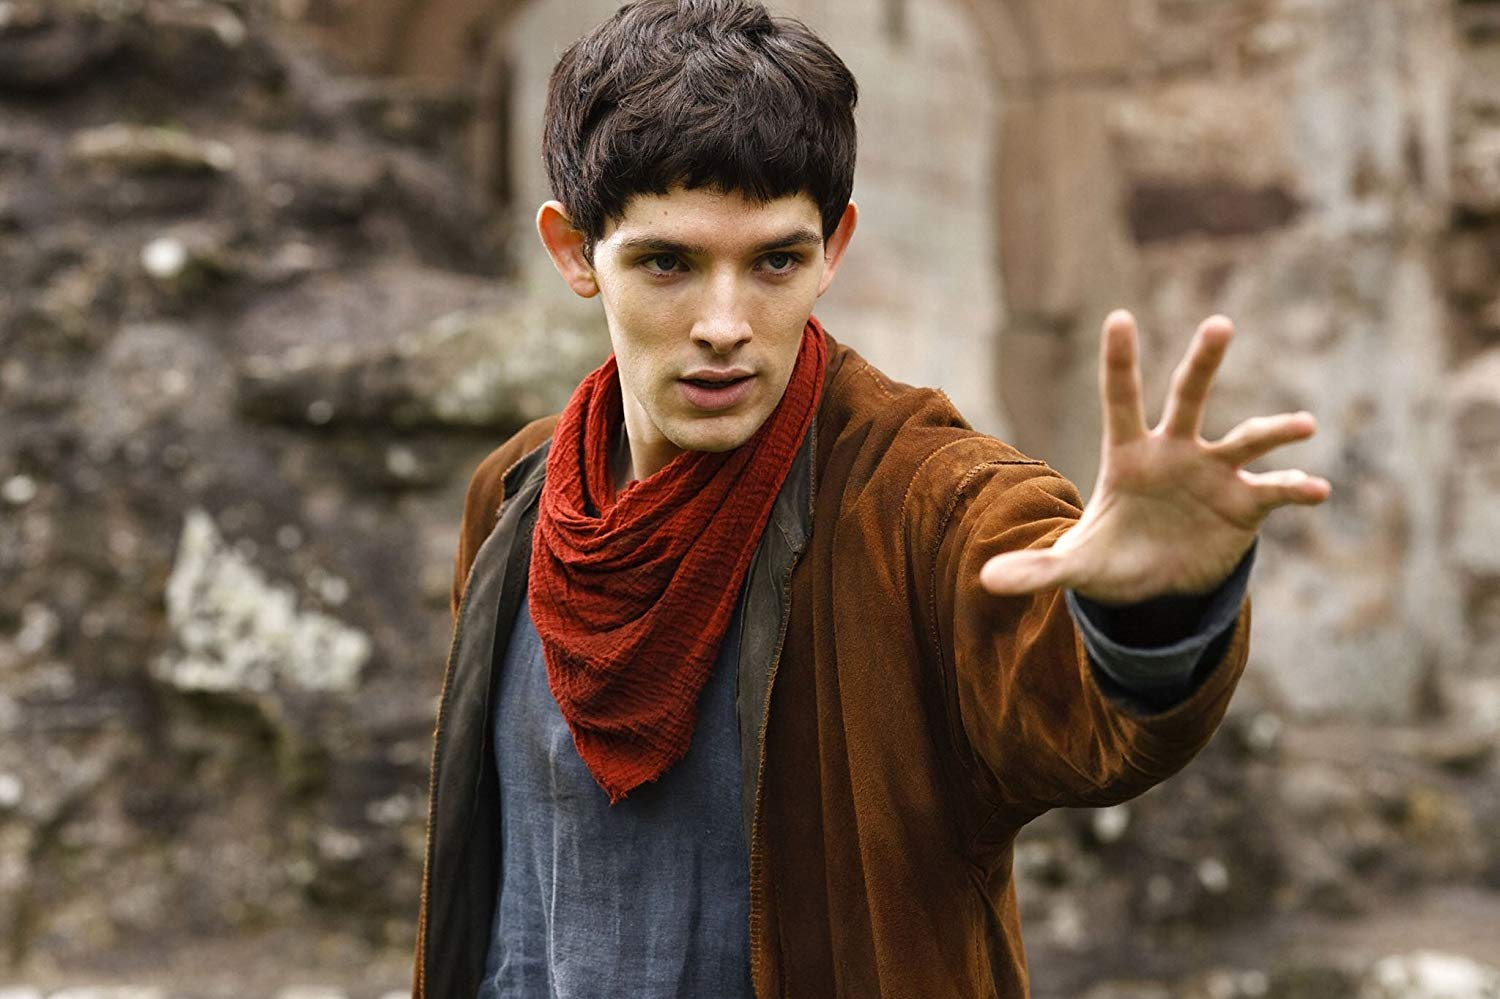 Merlin about to cast a spell